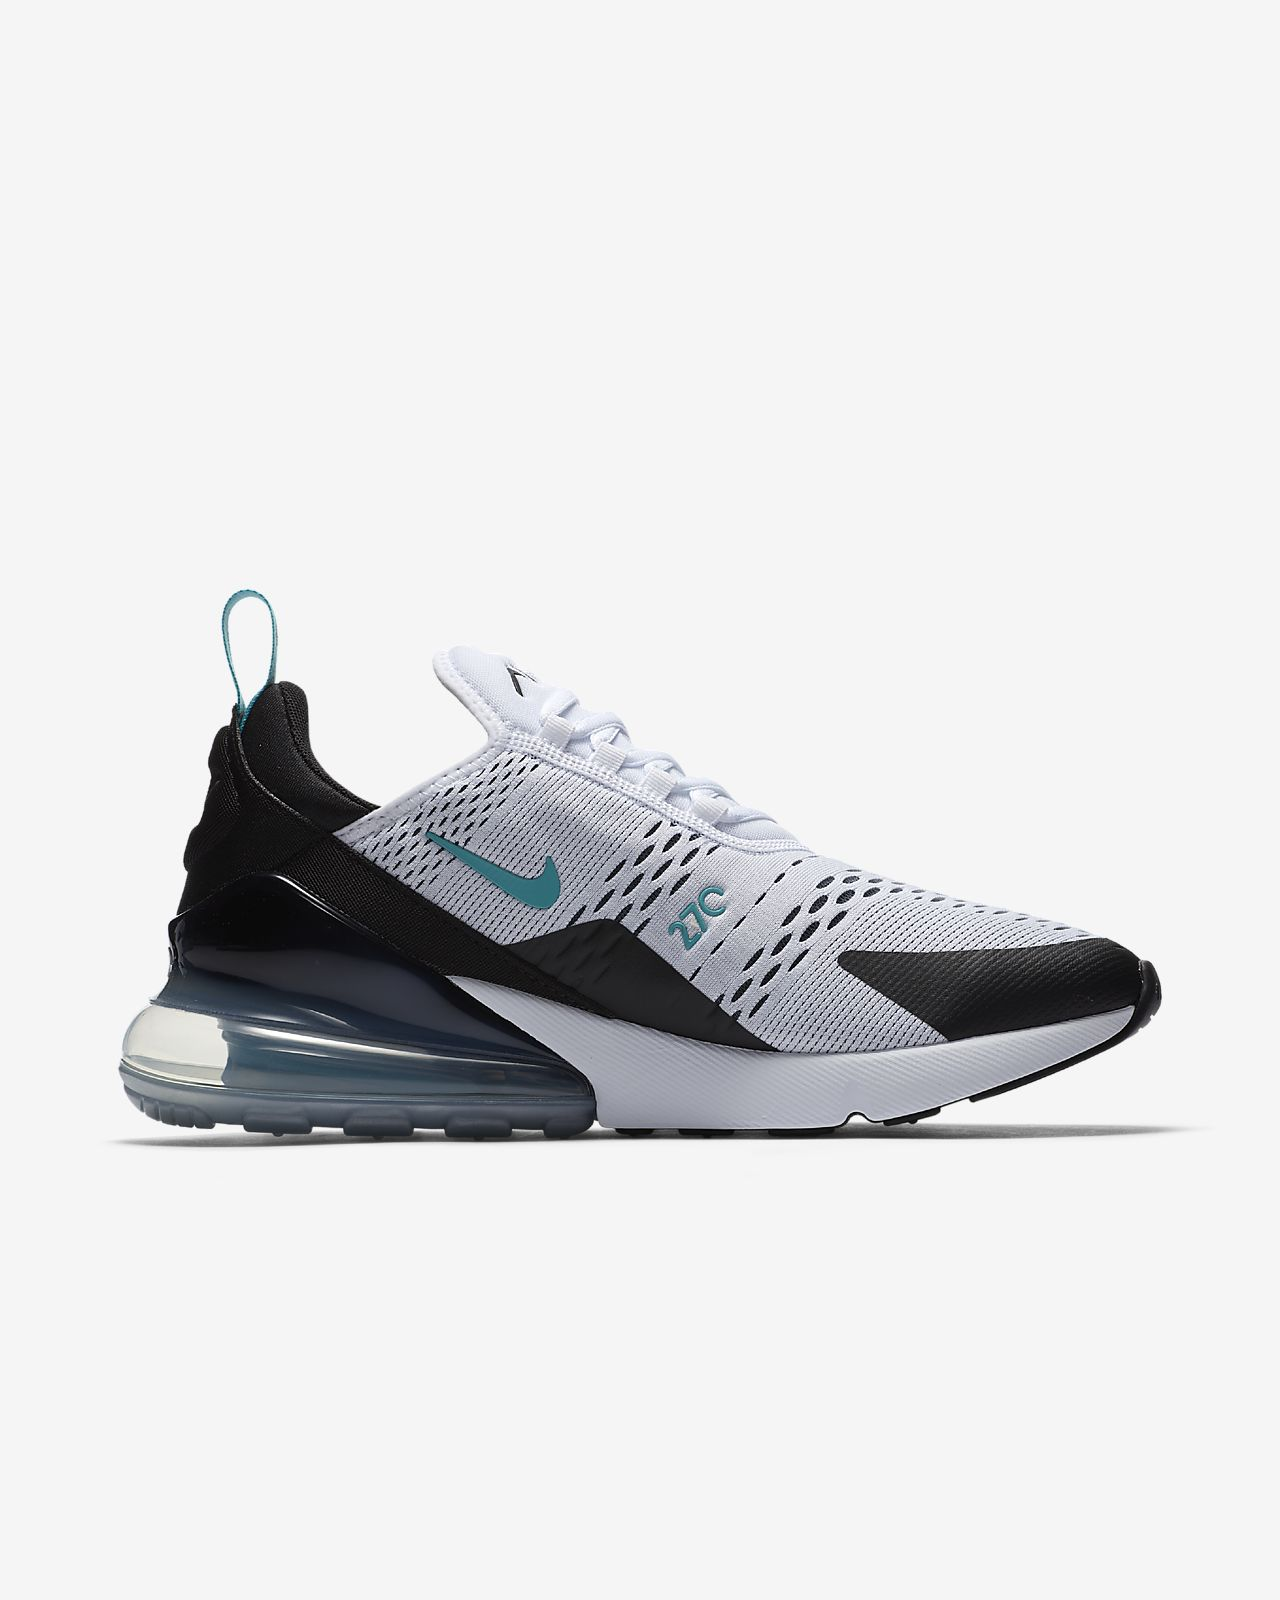 Nike Air Max 270 Premium Sneakers String Size 8 9 10 11